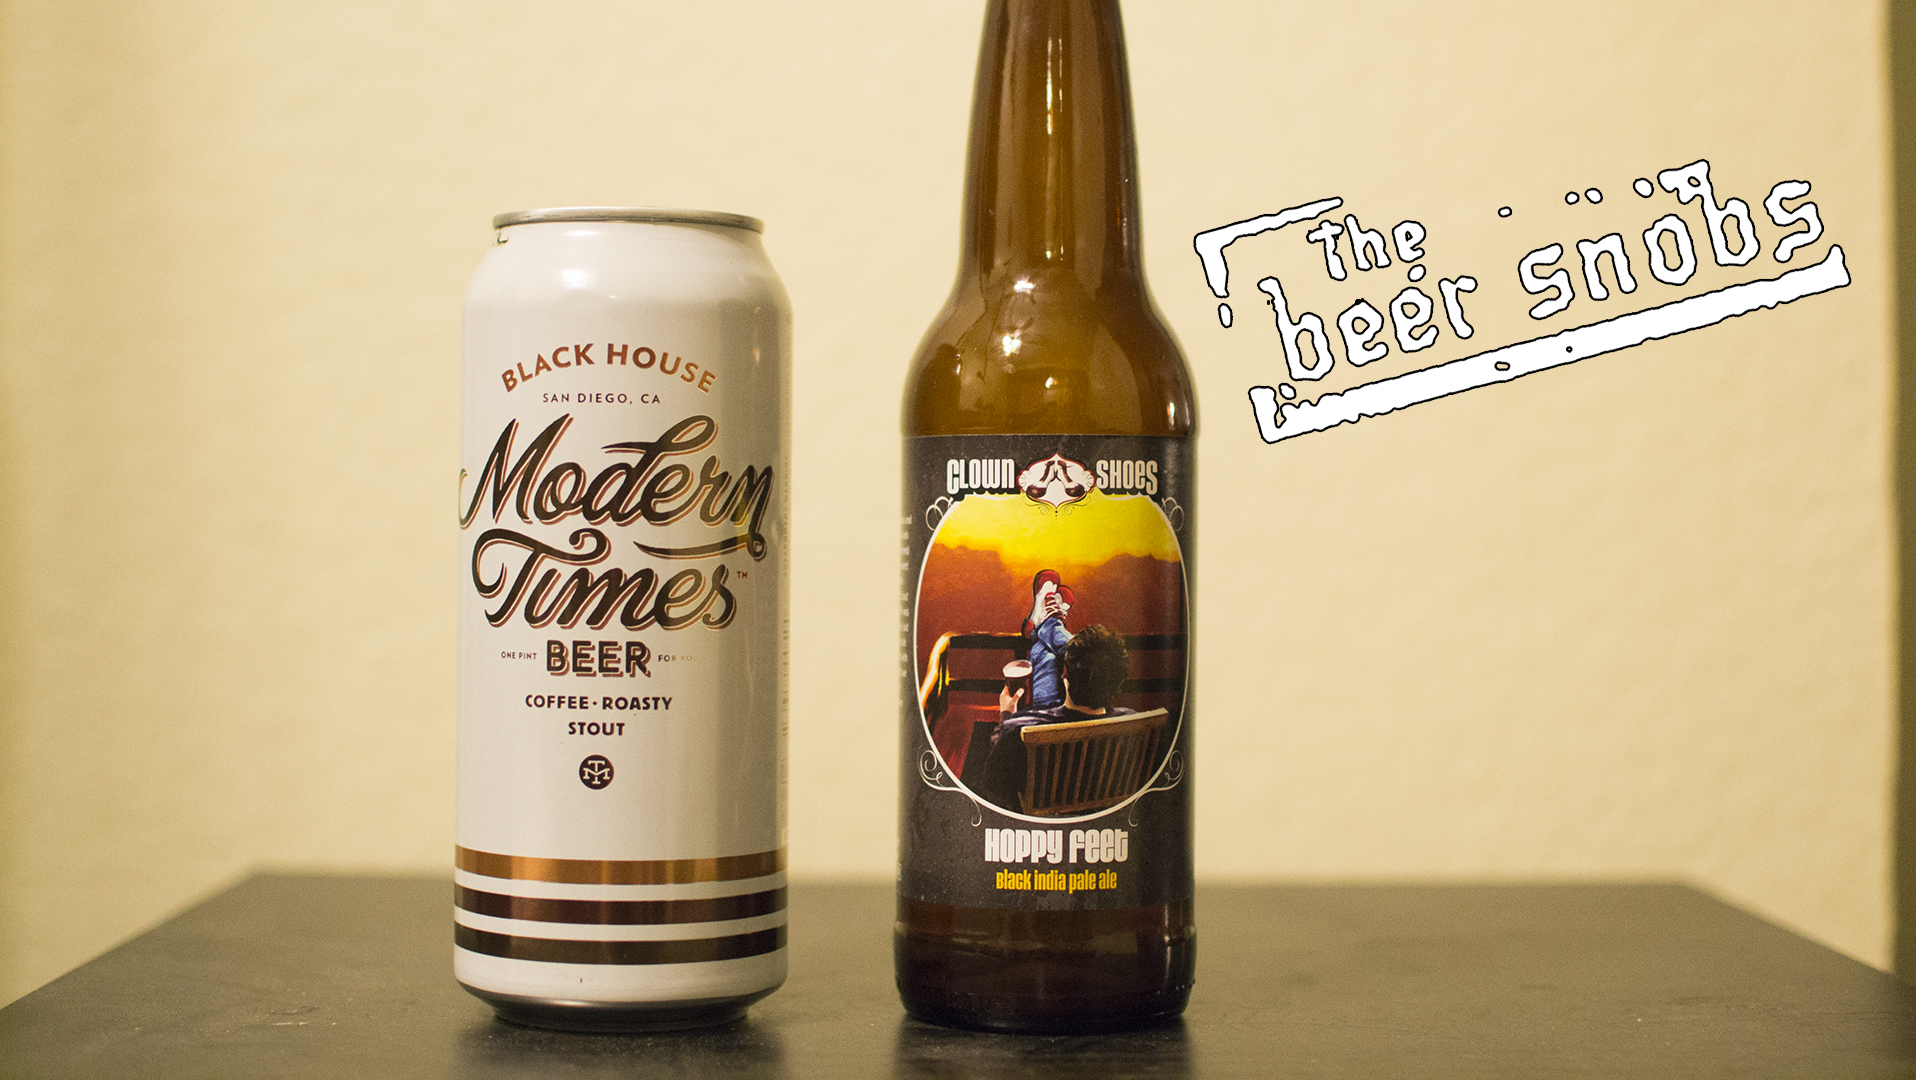 Modern Times Beer Black House and Clown Shoes Hoppy Feet